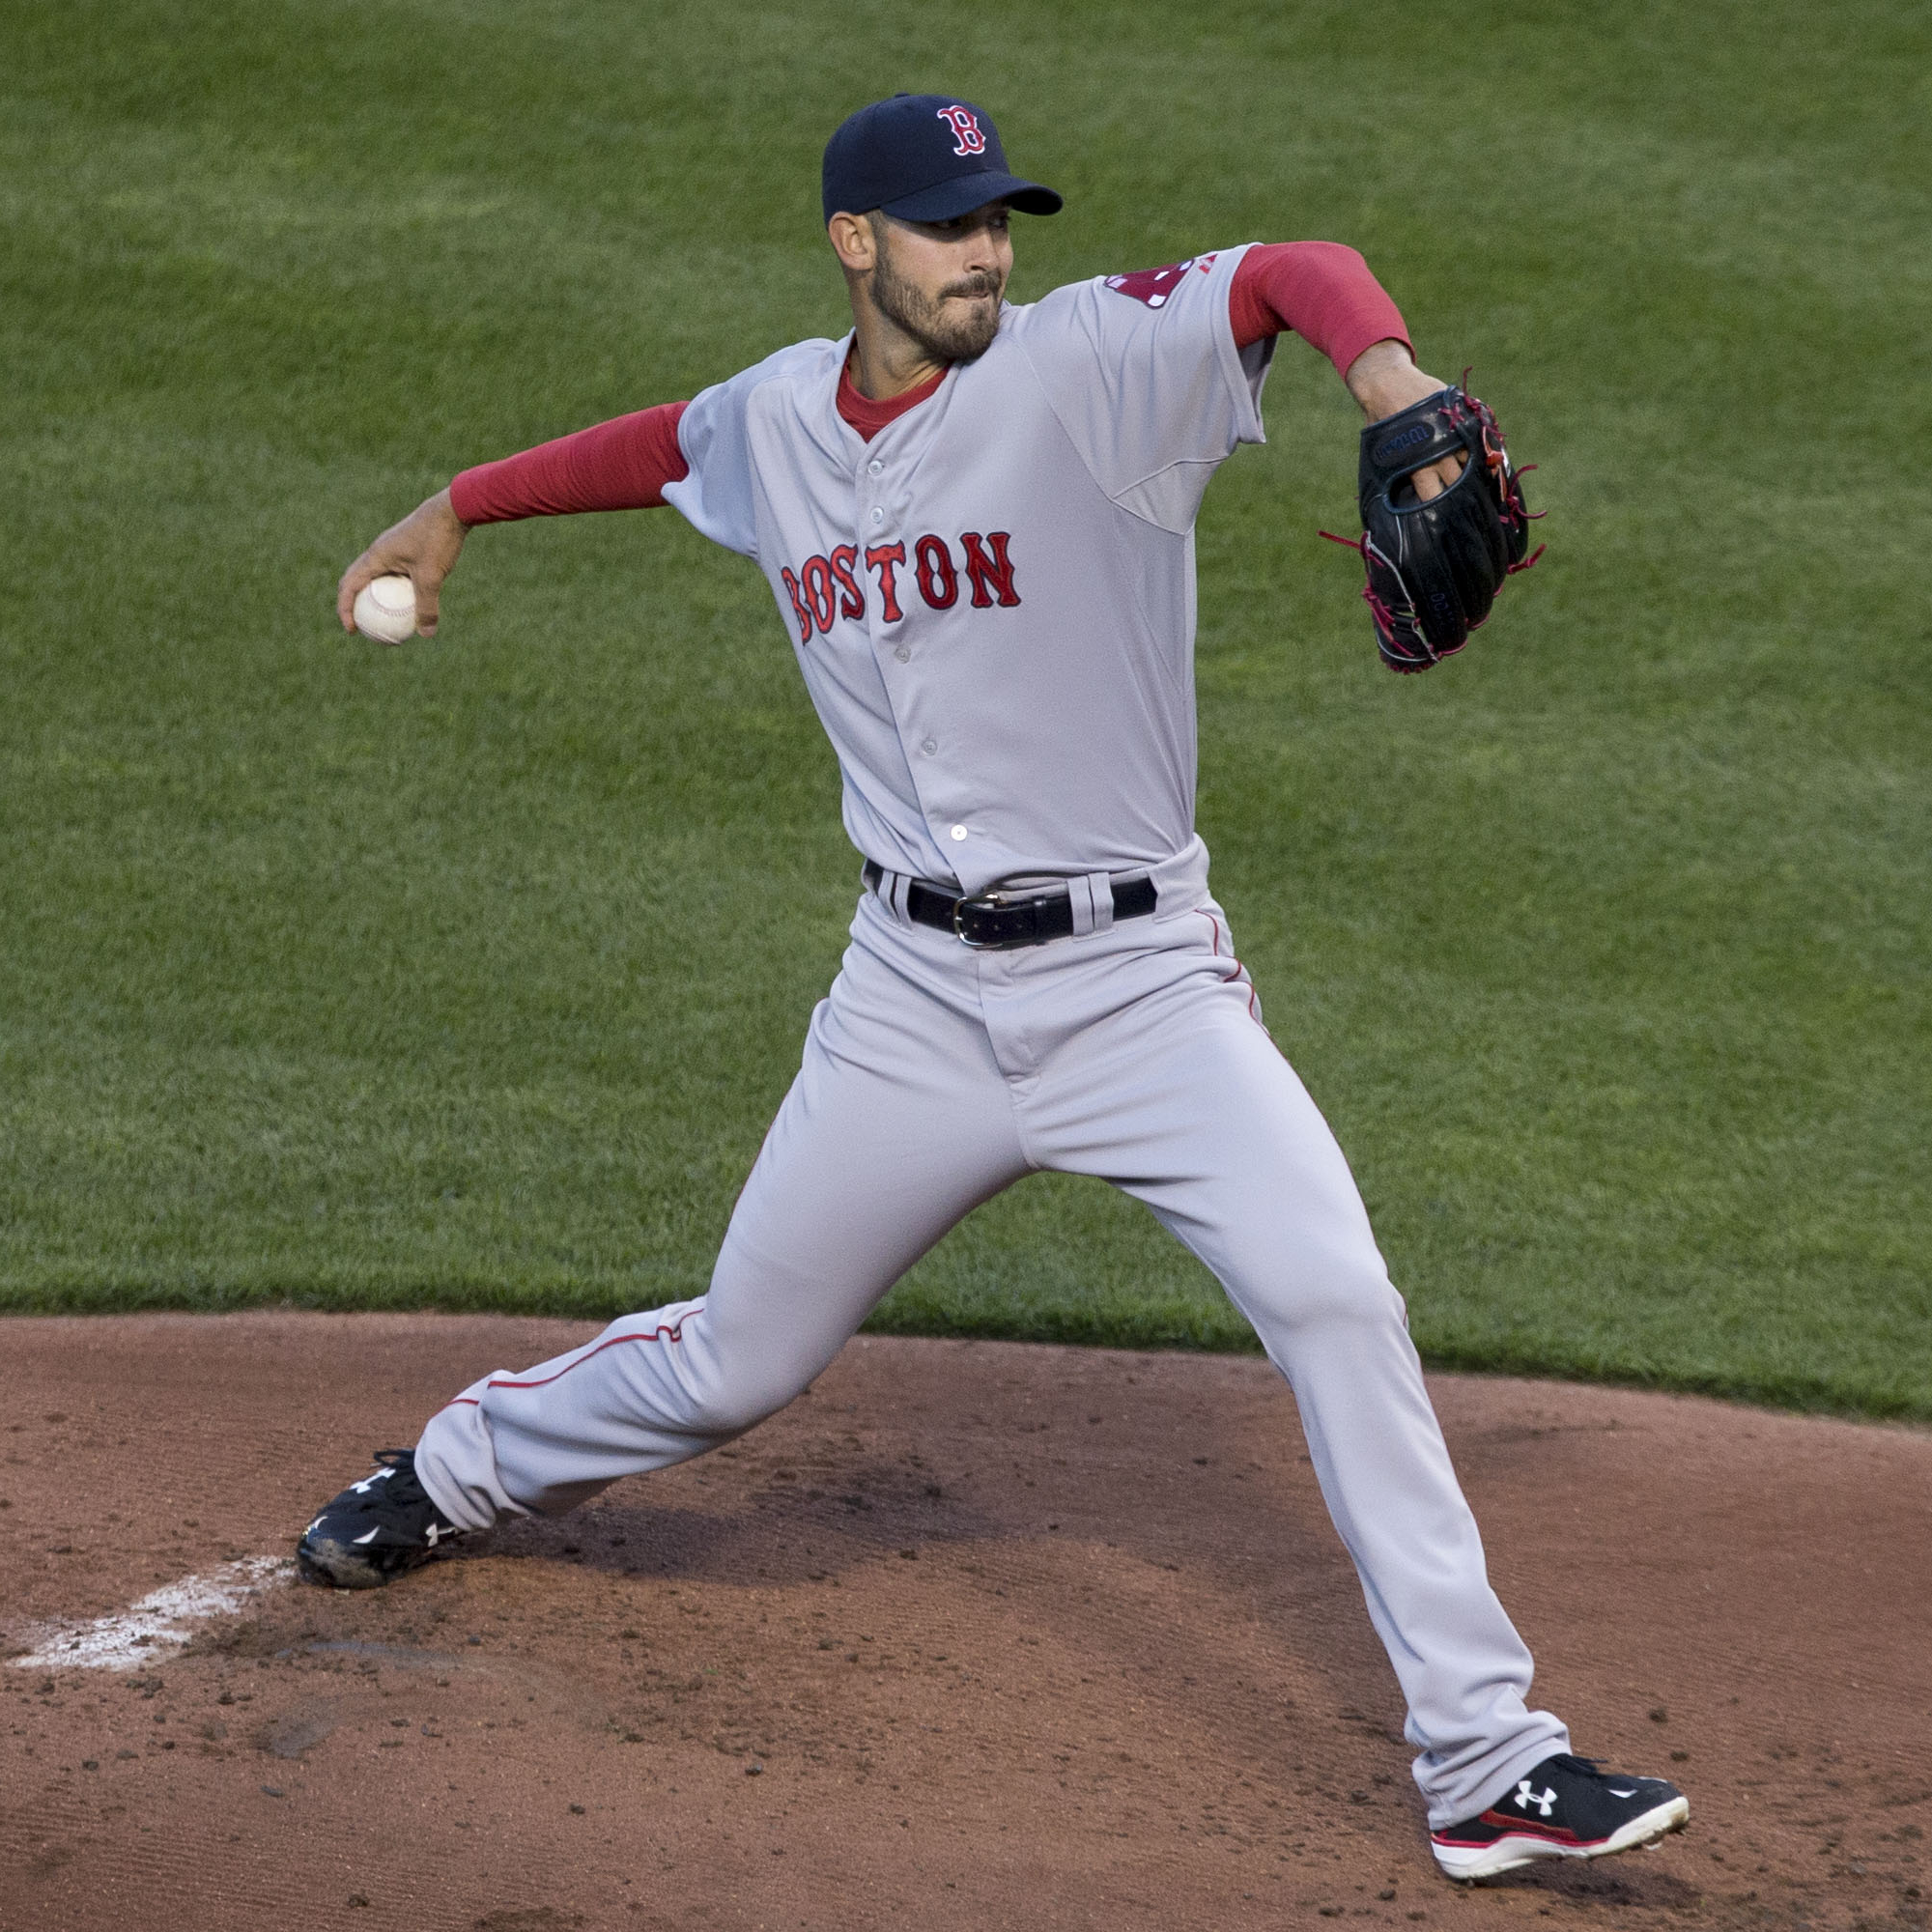 finest selection 3fab5 36366 Rick Porcello - Wikipedia